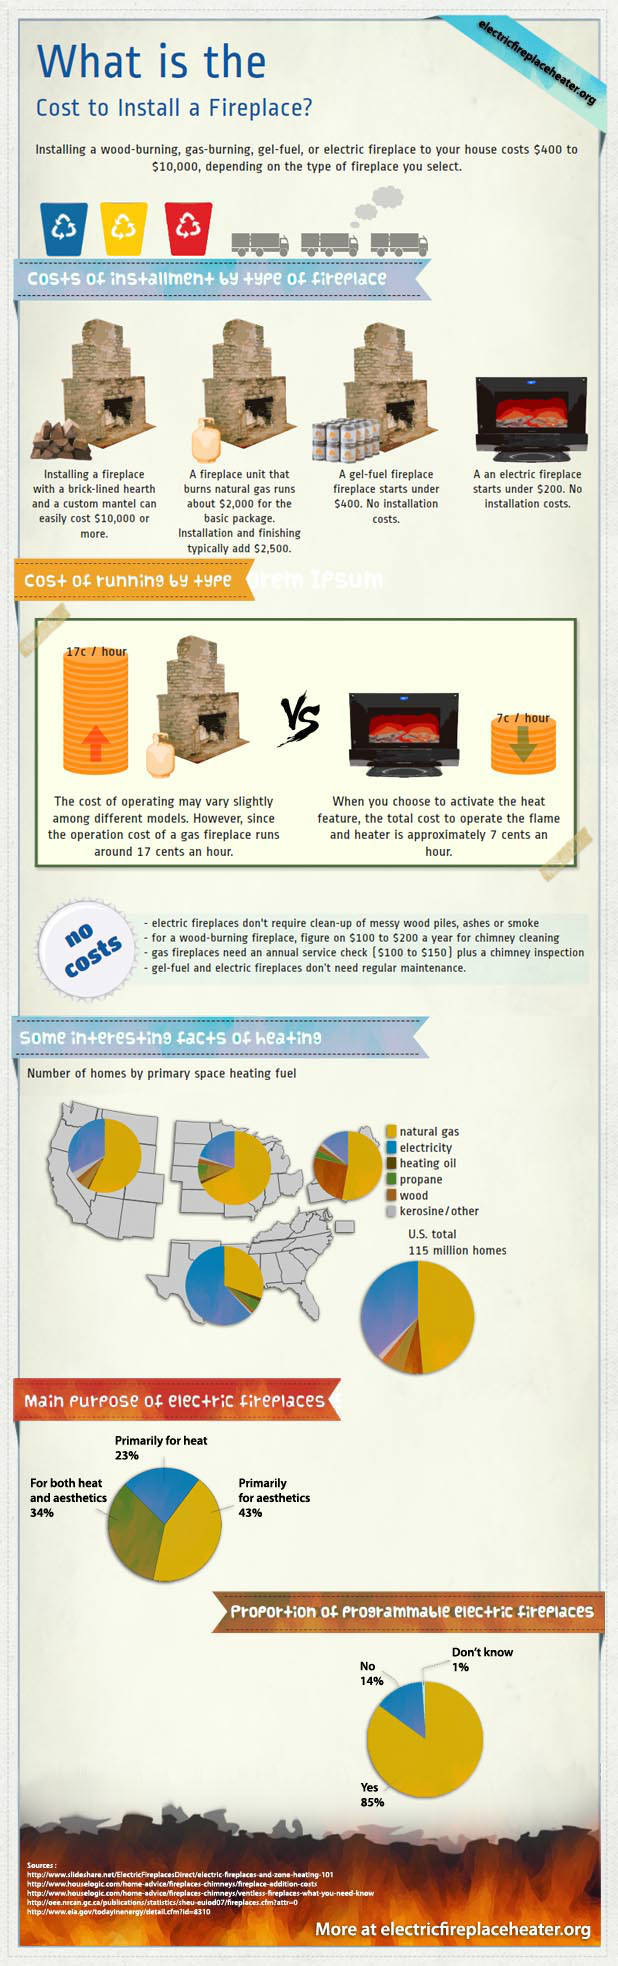 Infographic Electric Fireplace Heater 618px